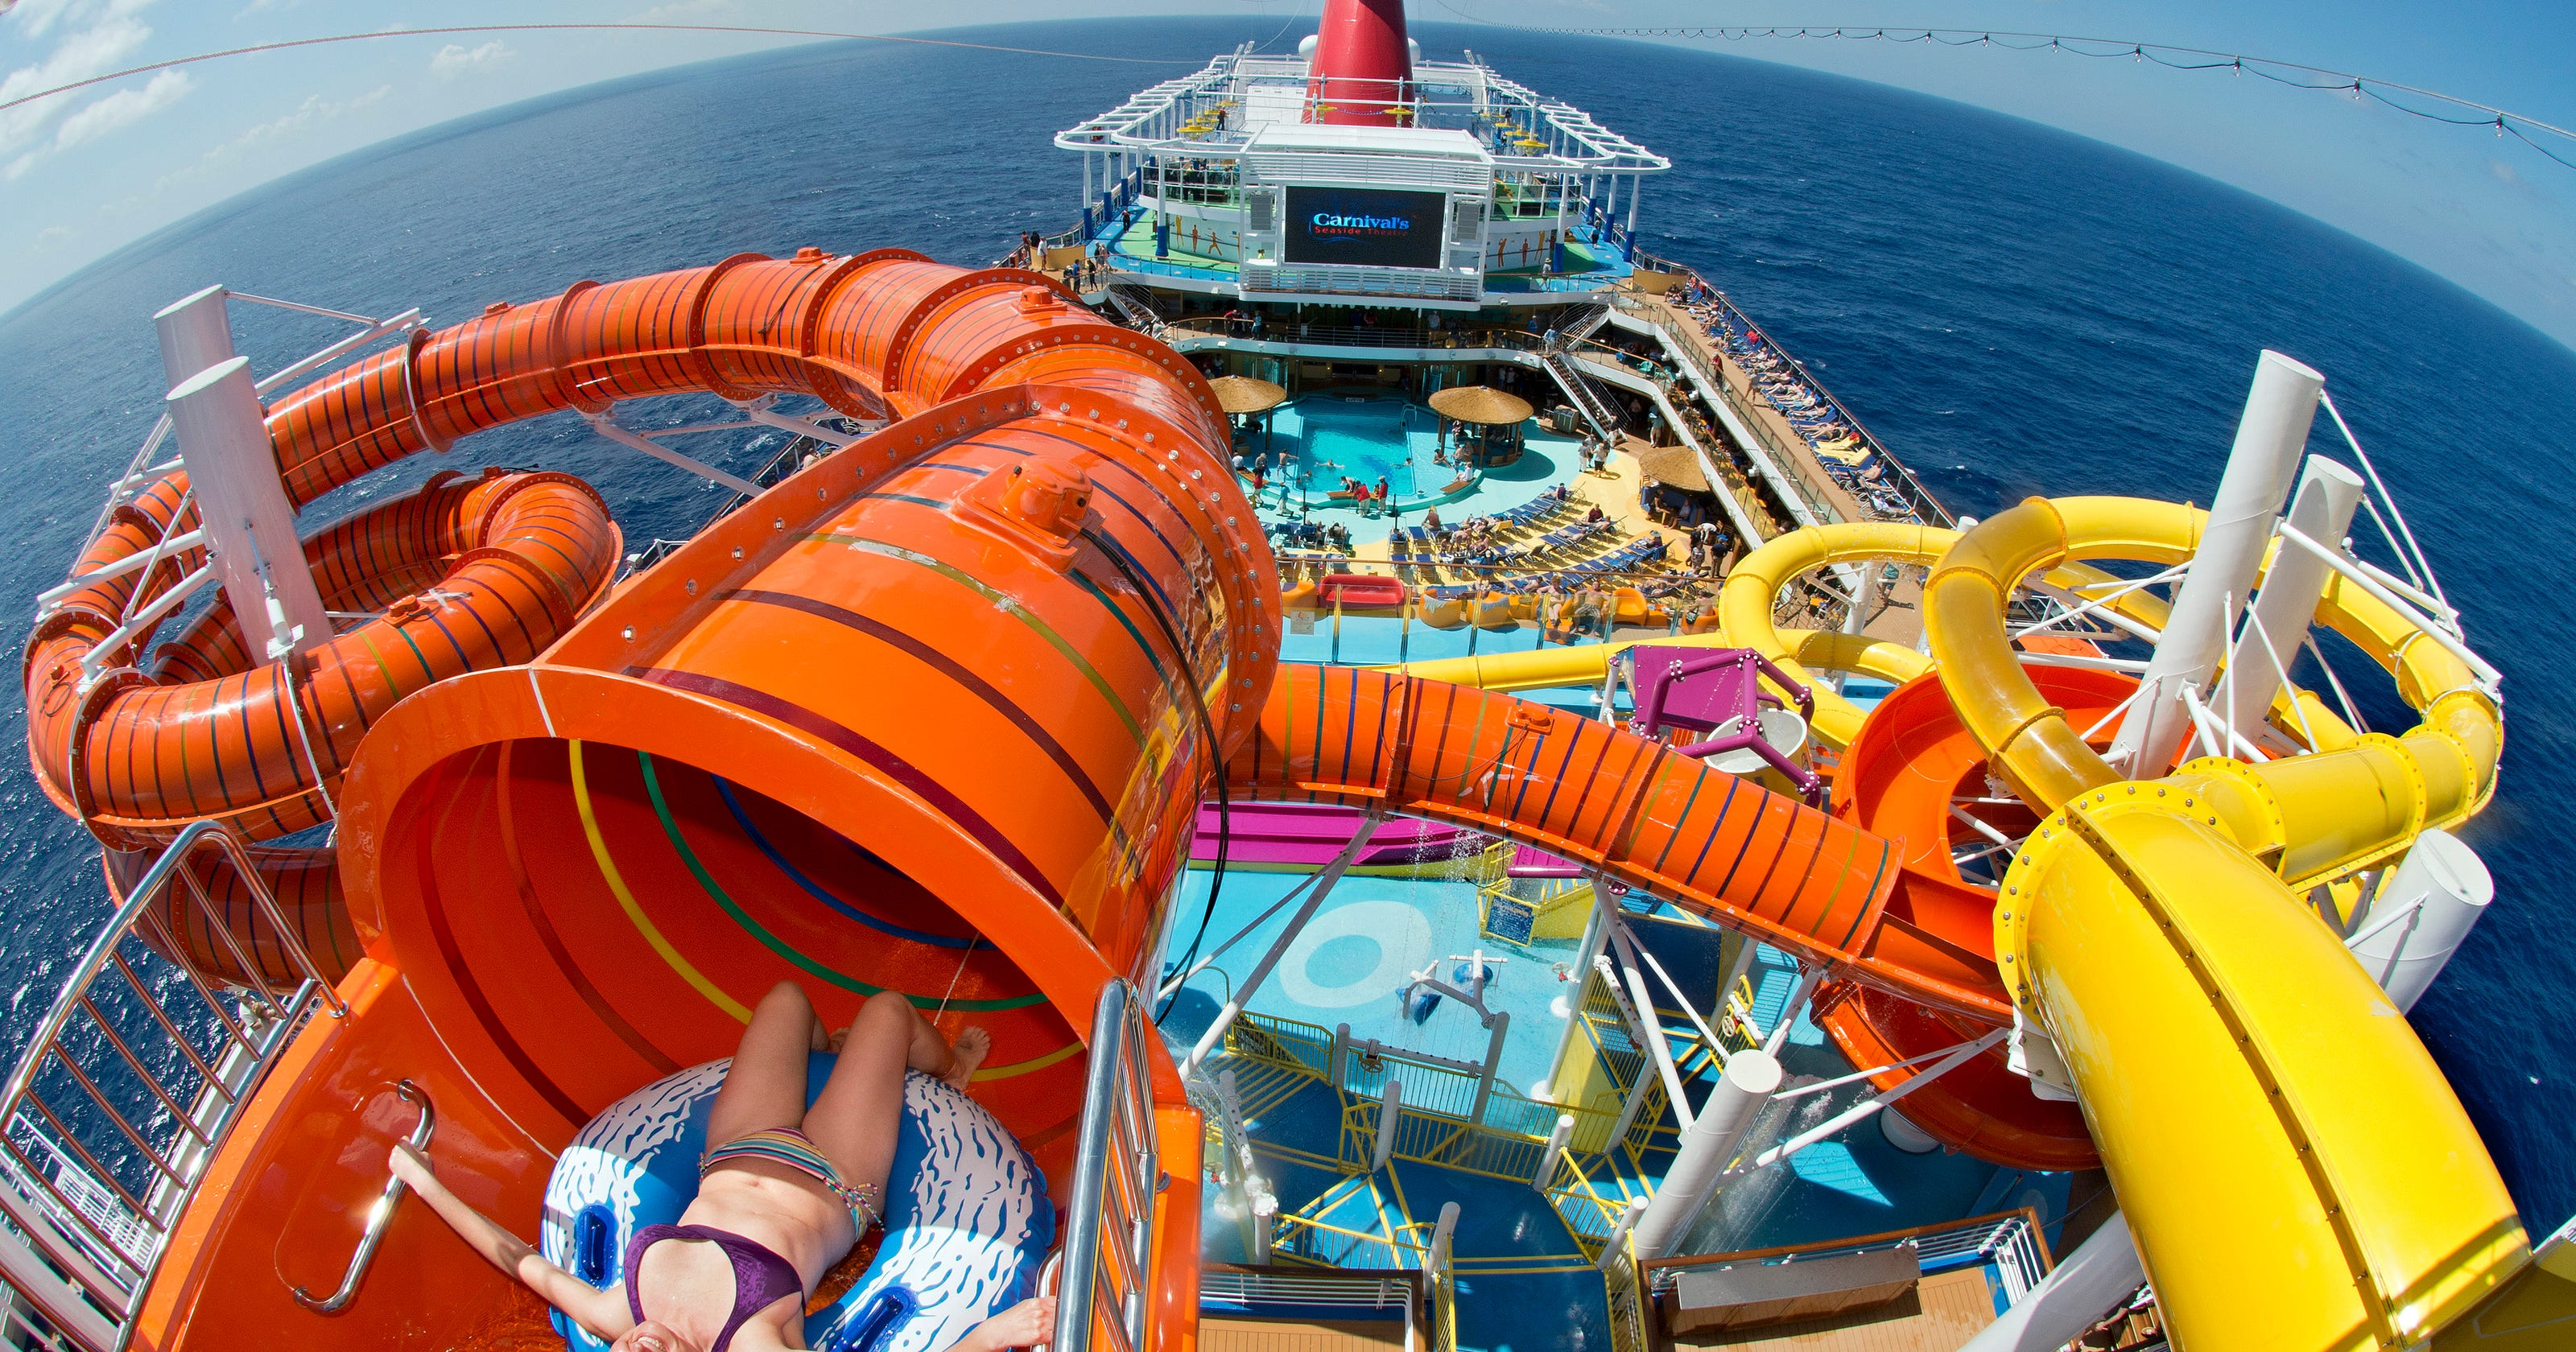 Photo tour: Cruise ship pool decks that will blow your mind (usatoday.com)